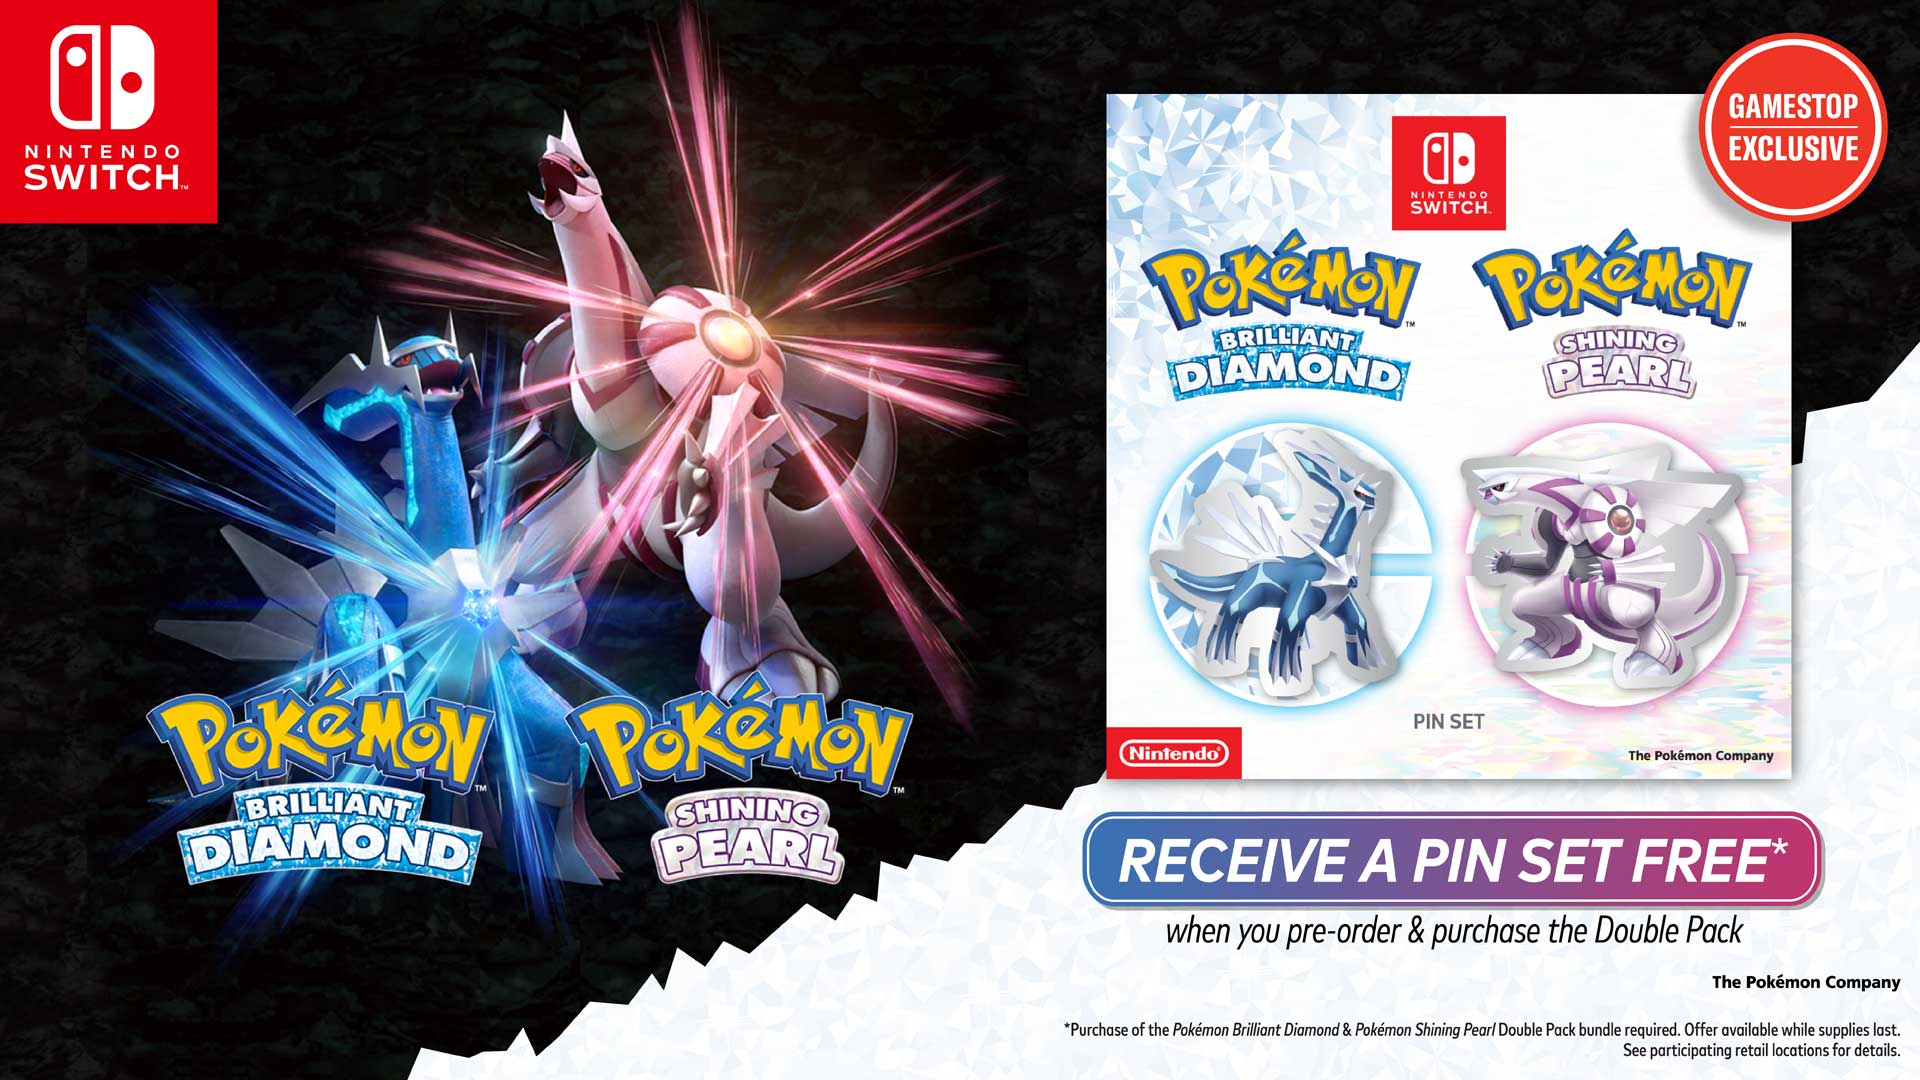 US: GameStop offers a free pin set when you pre-order the game Double Pack of Pokemon Brilliant Diamonds and Shining Pearl